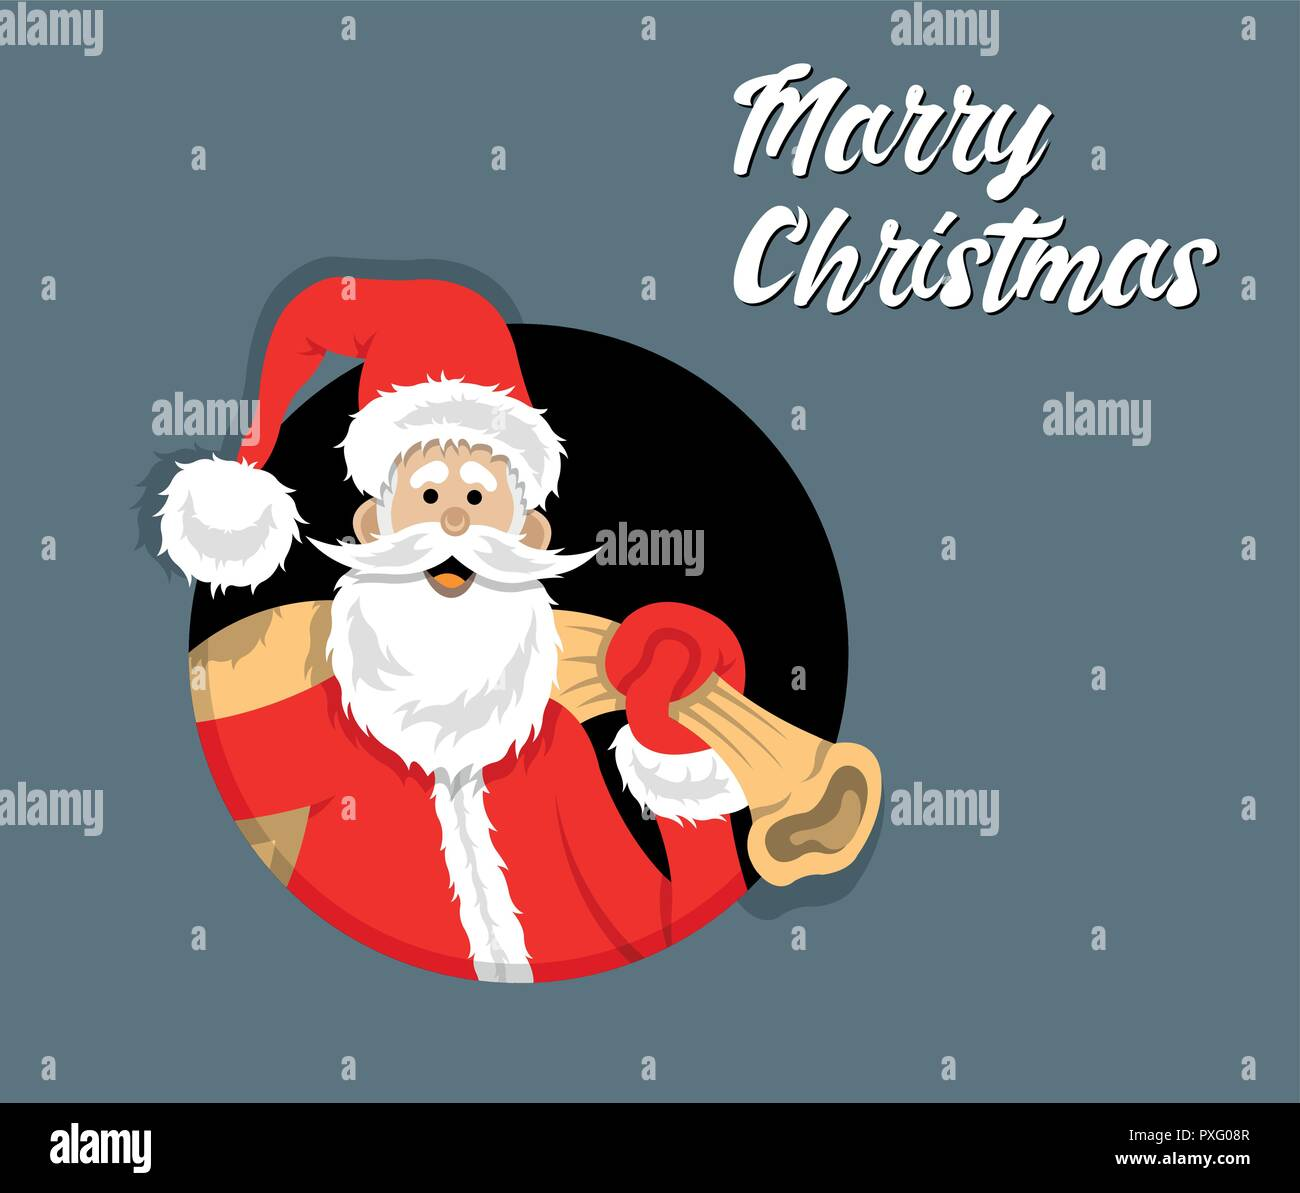 Santa Claus cartoon inside circle with merry christmas message. All ...